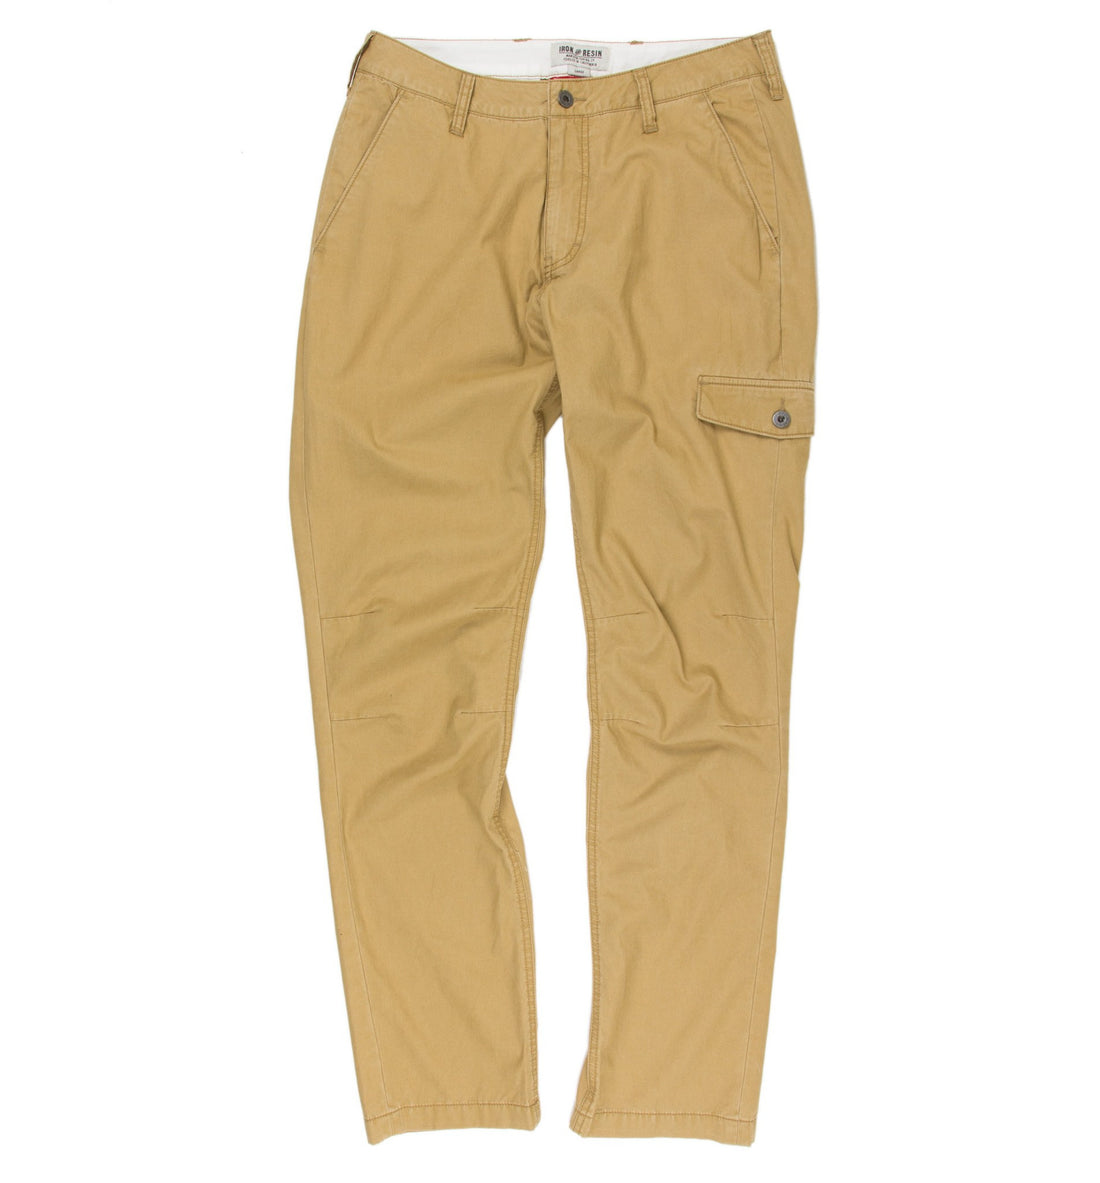 INR Range Pant - Bottoms - Iron and Resin